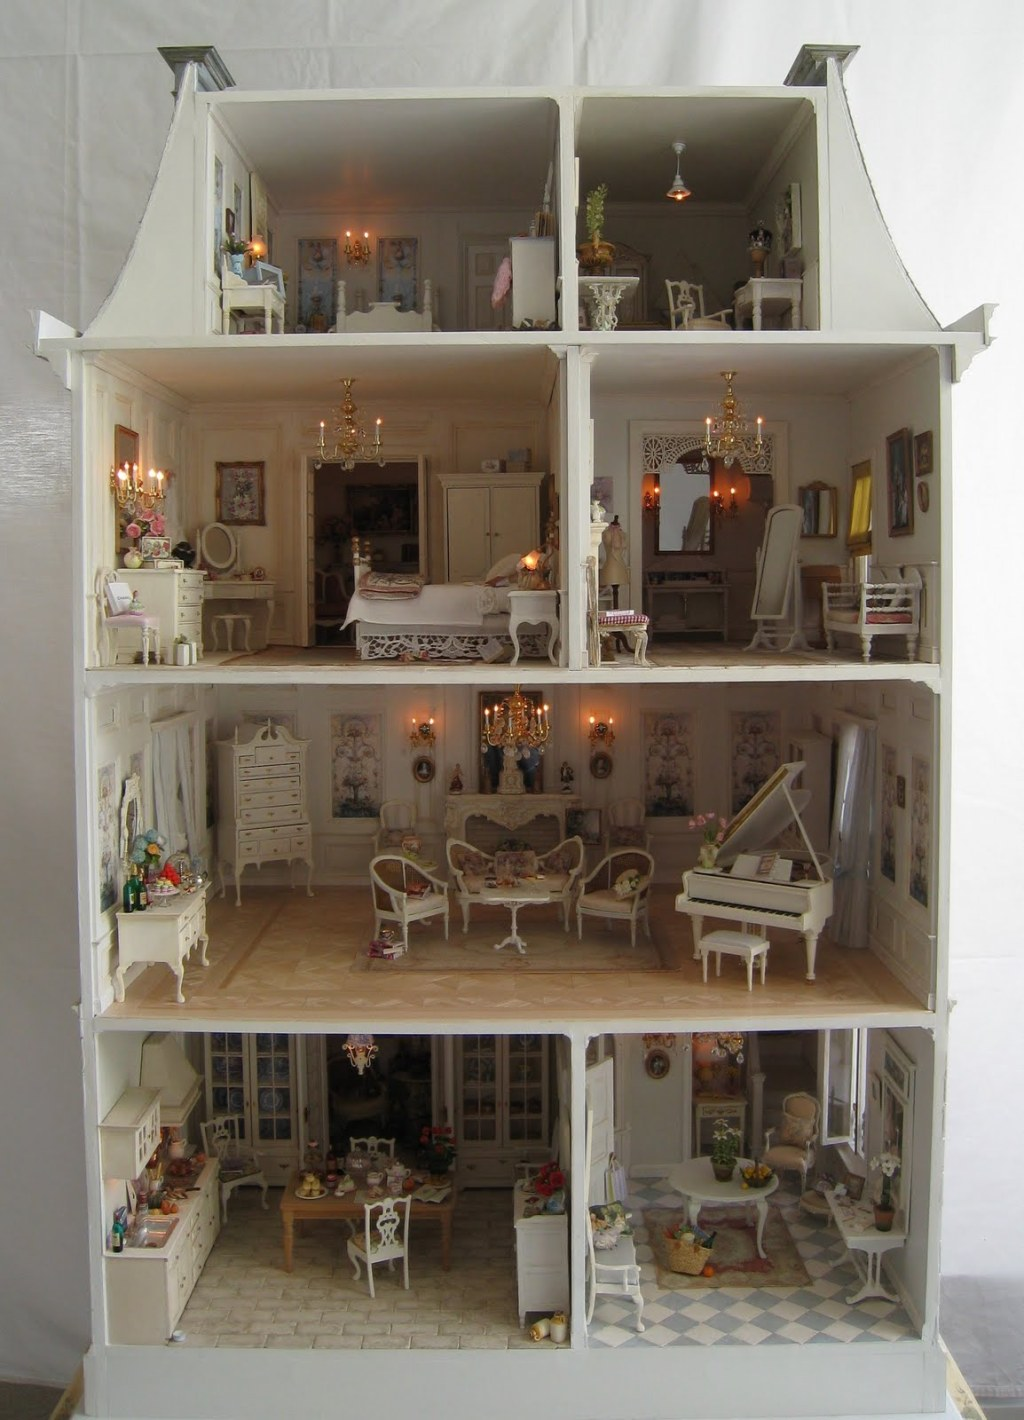 La petite maison a dollhouse five years in the making make - Maison wooden ...